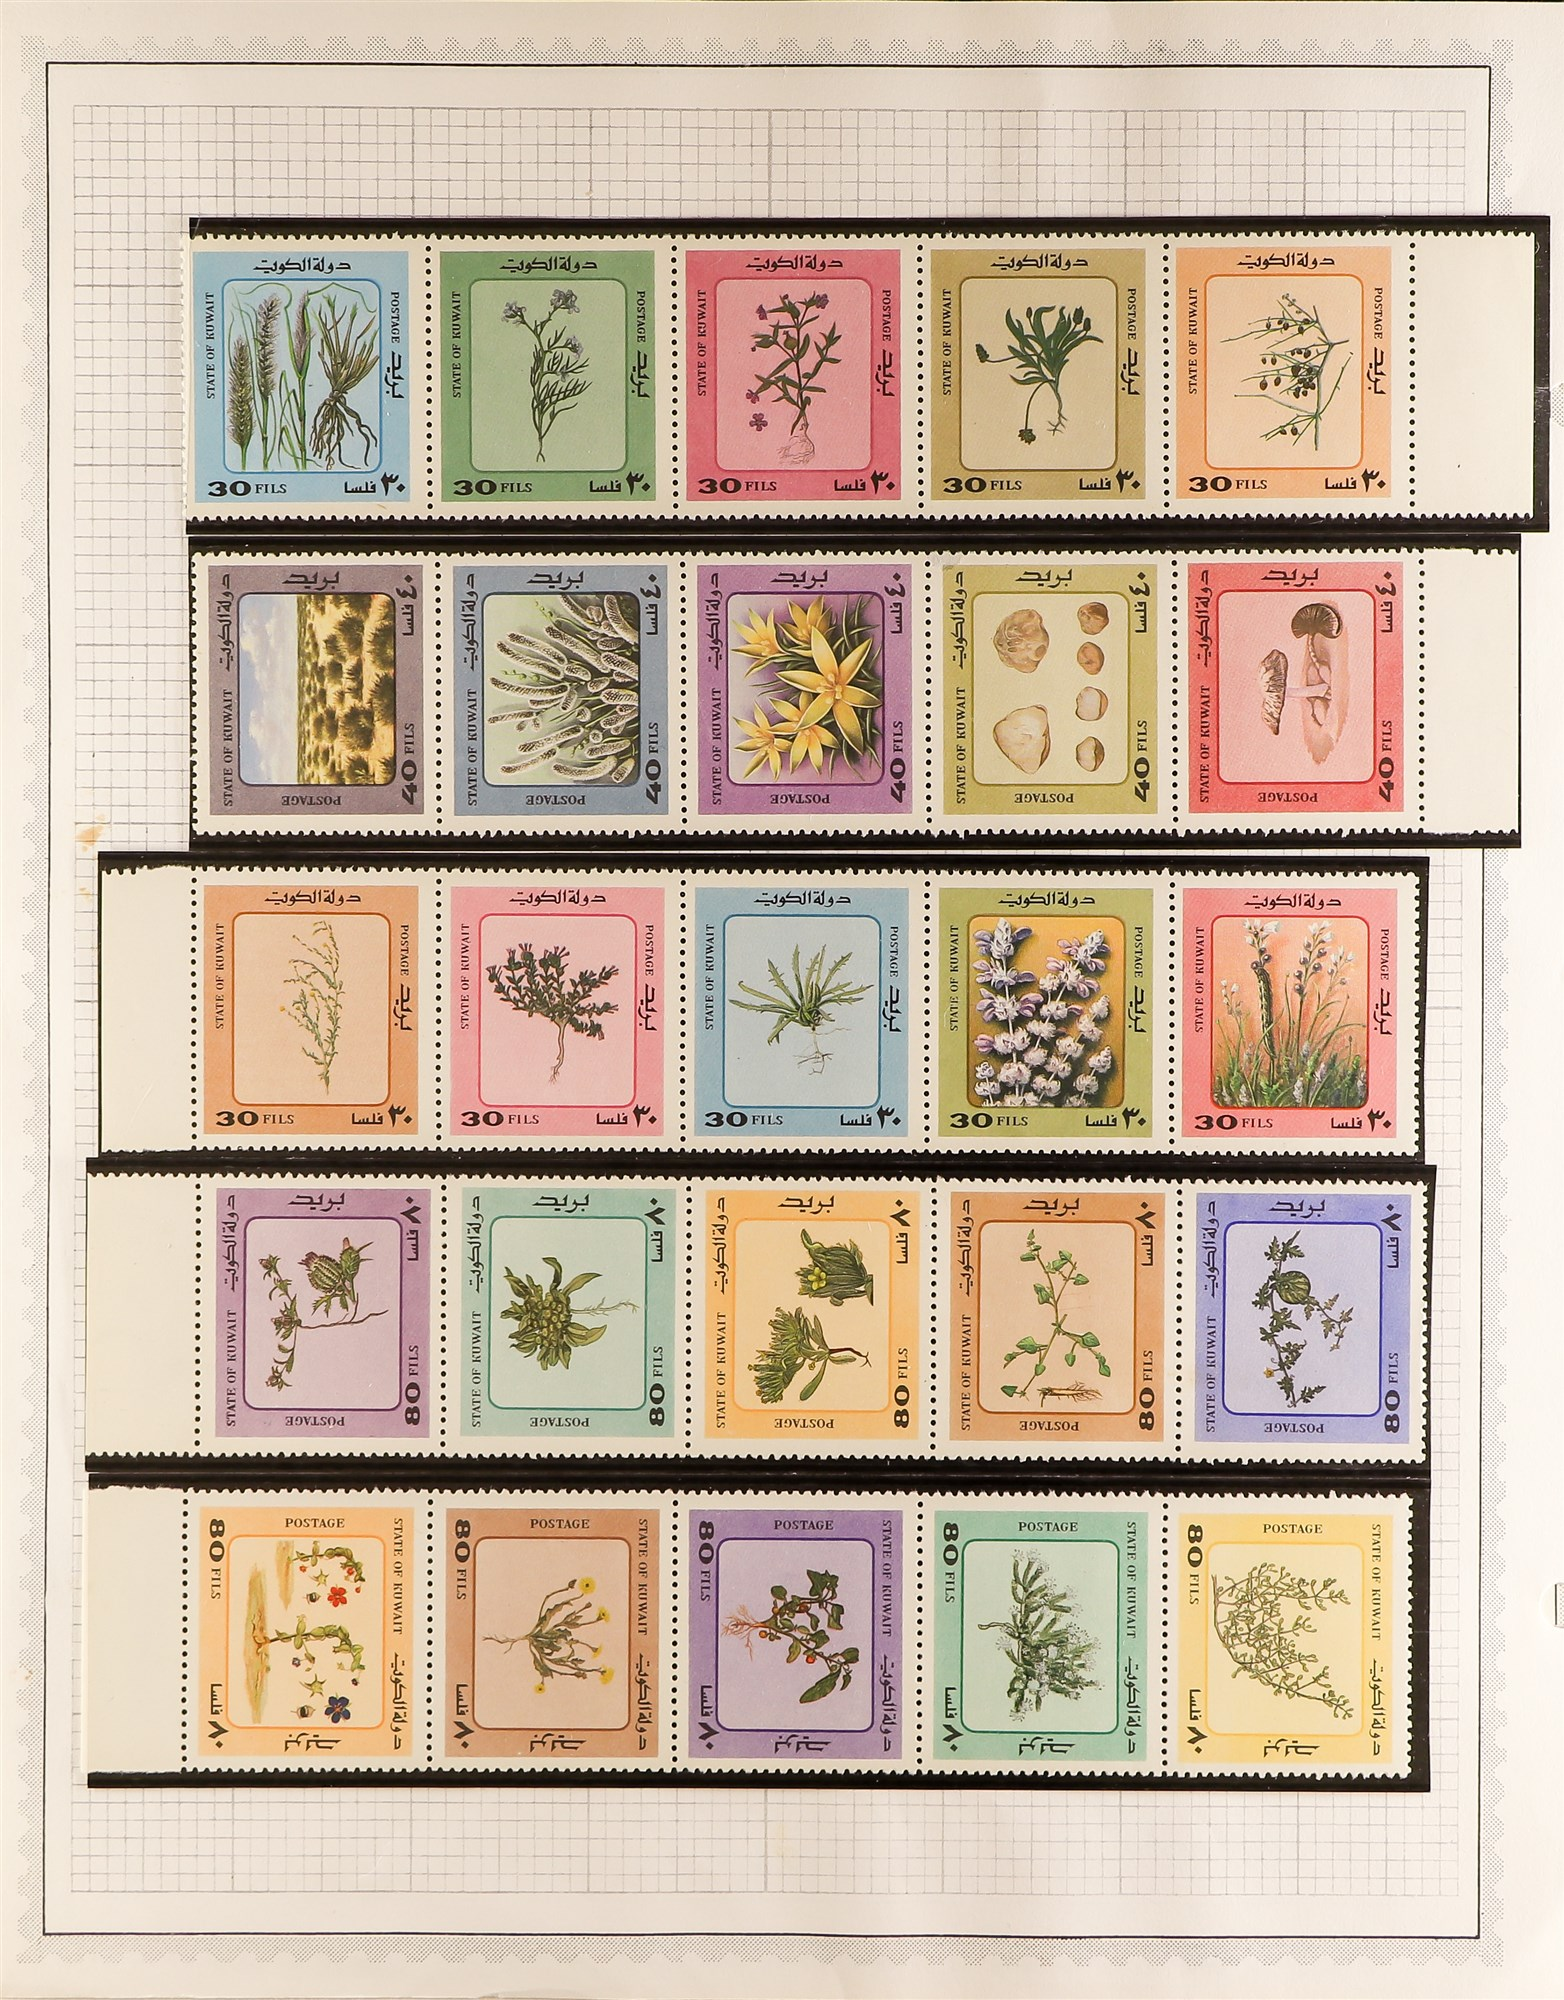 KUWAIT 1977-1983 NEVER HINGED MINT COLLECTION incl. 1977 Sheikh set, 1977 Games se-tenant blocks - Image 6 of 8